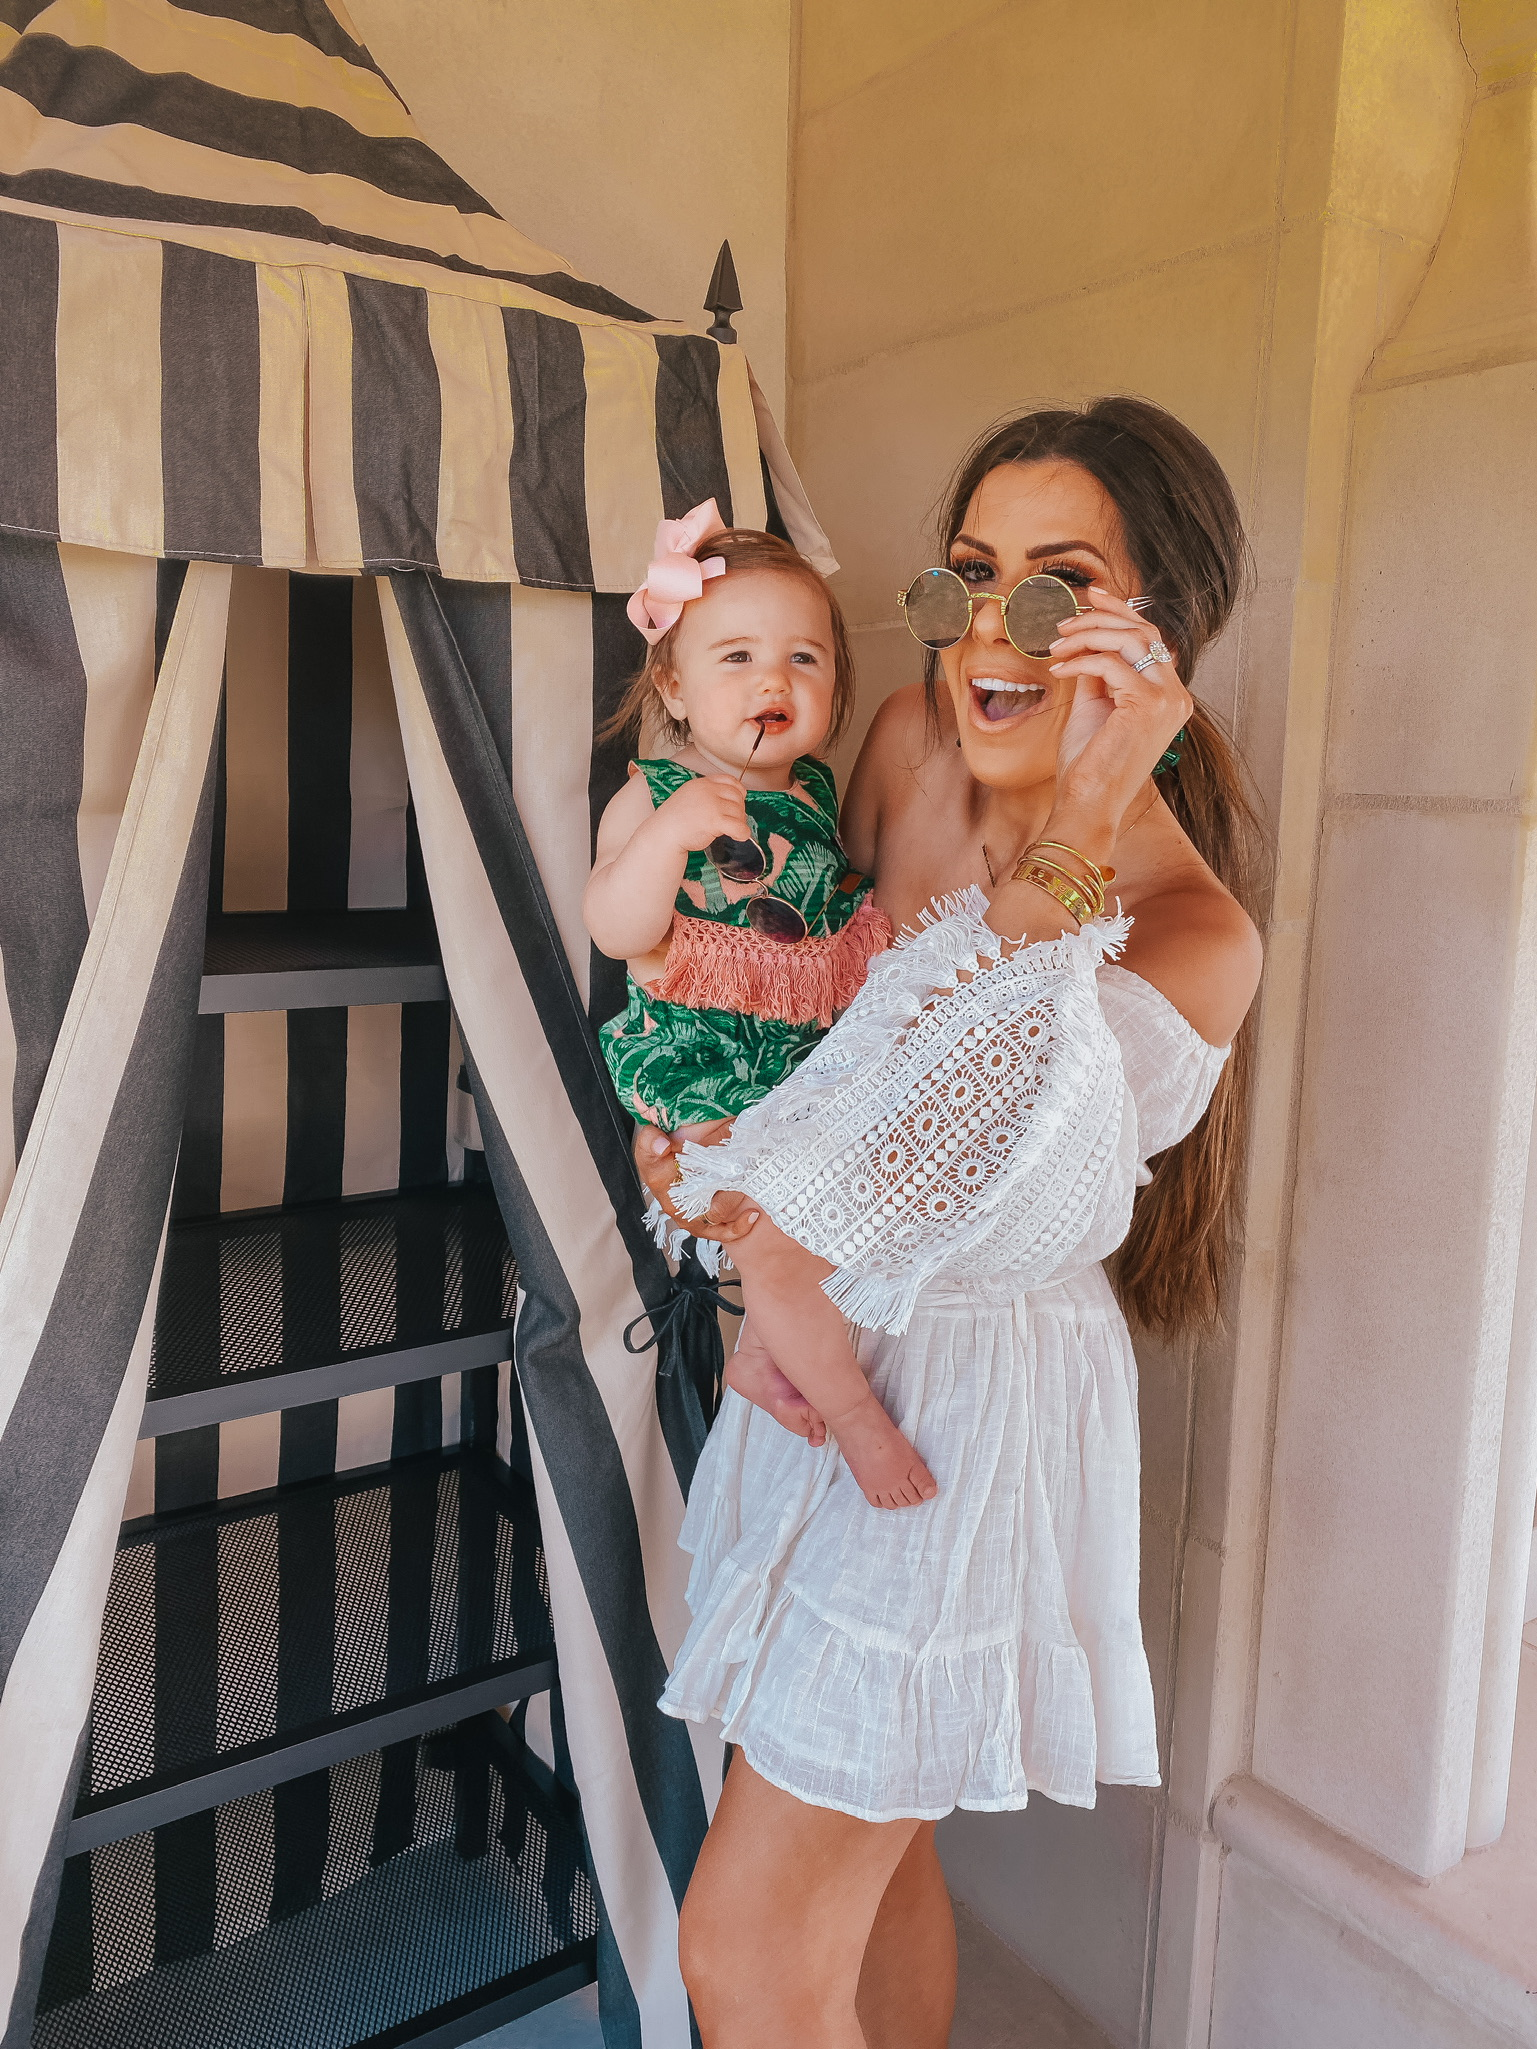 Instagram Recap by popular US lifestyle blog, The Sweetest Thing: image of Emily Gemma holding her daughter and wearing a Red Dress She's The One Ivory Eyelet Lace Dress, Judith March PALM SPRINGS DREAM STATEMENT EARRING, Nordstrom 48mm Round Metal Sunglasses BP., Judith March TROOP PALM SPRINGS BIB & DIAPER COVER, Amazon Roll over image to zoom in SA106 Kids Child Size Hippie Round Circle Lens Tie Dye Gradient Metal Sunglasses, and Amazon Korobeauty Hair Bow.